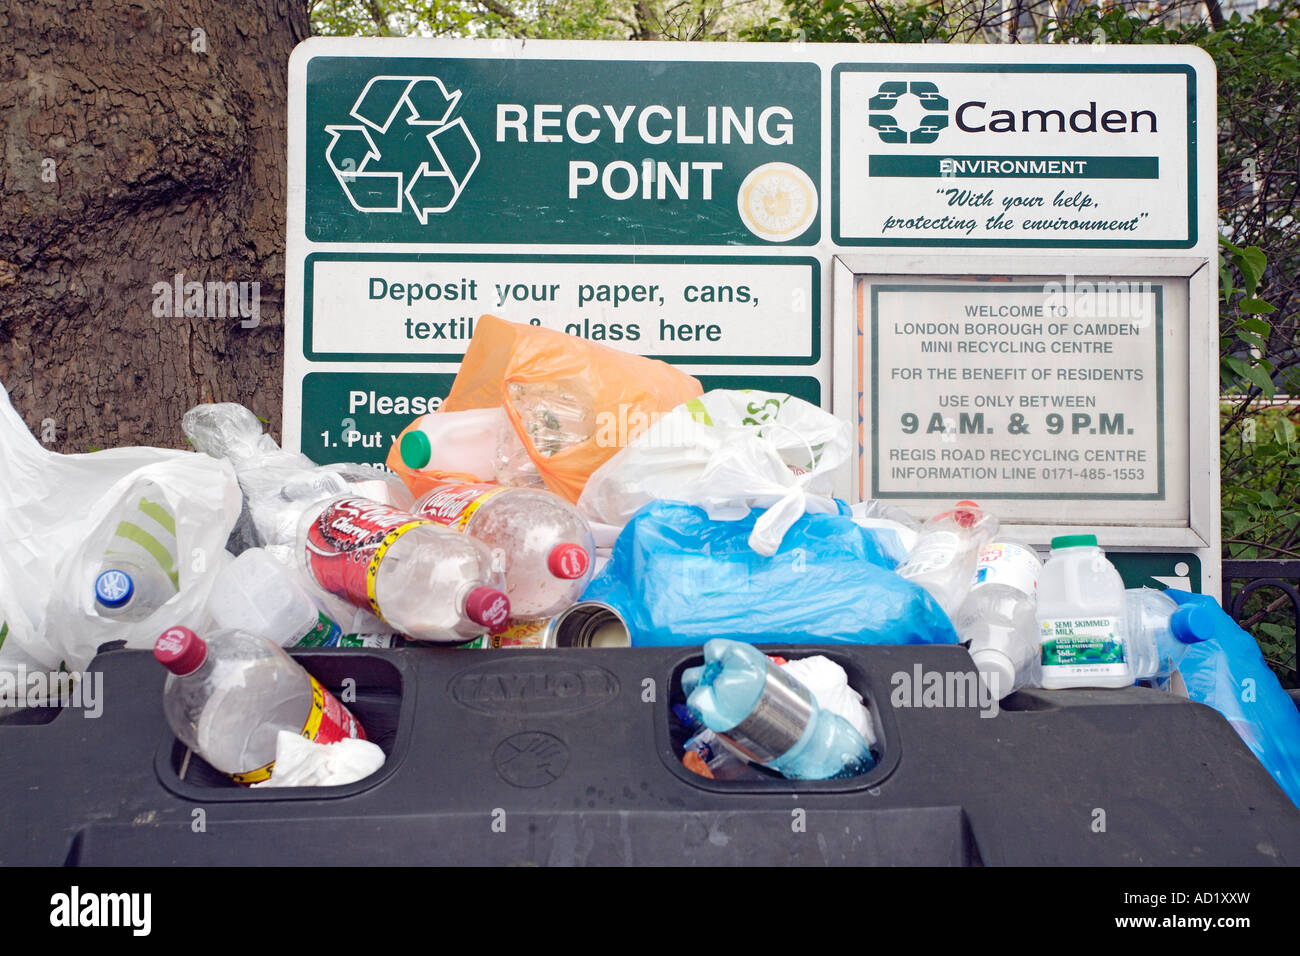 London Recycling Stock Photos & London Recycling Stock Images - Alamy